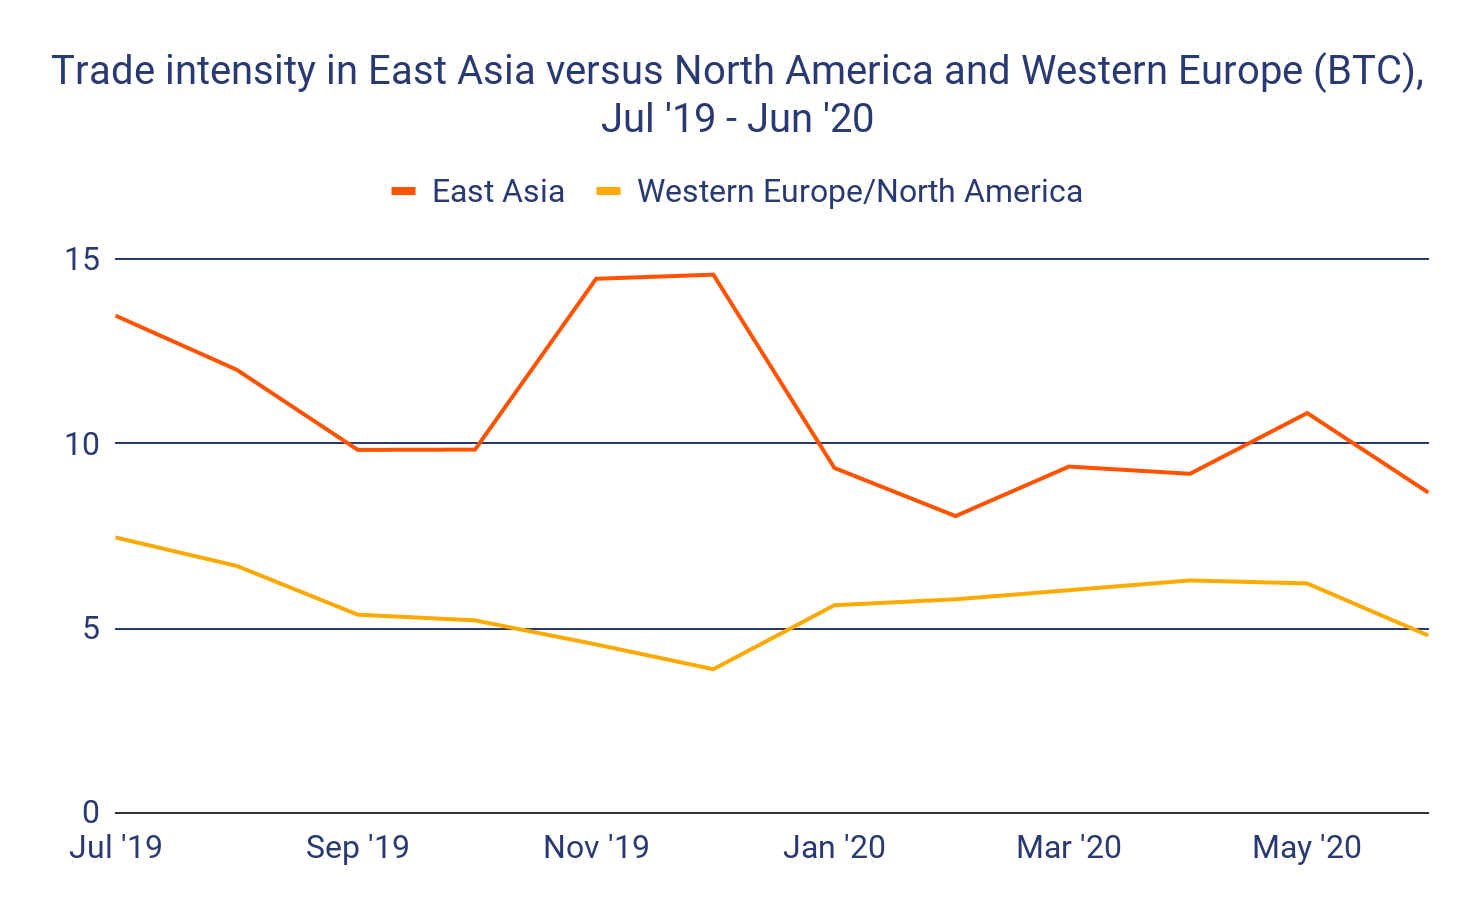 Trade intensity in East Asia with respect to North America and Western Europe